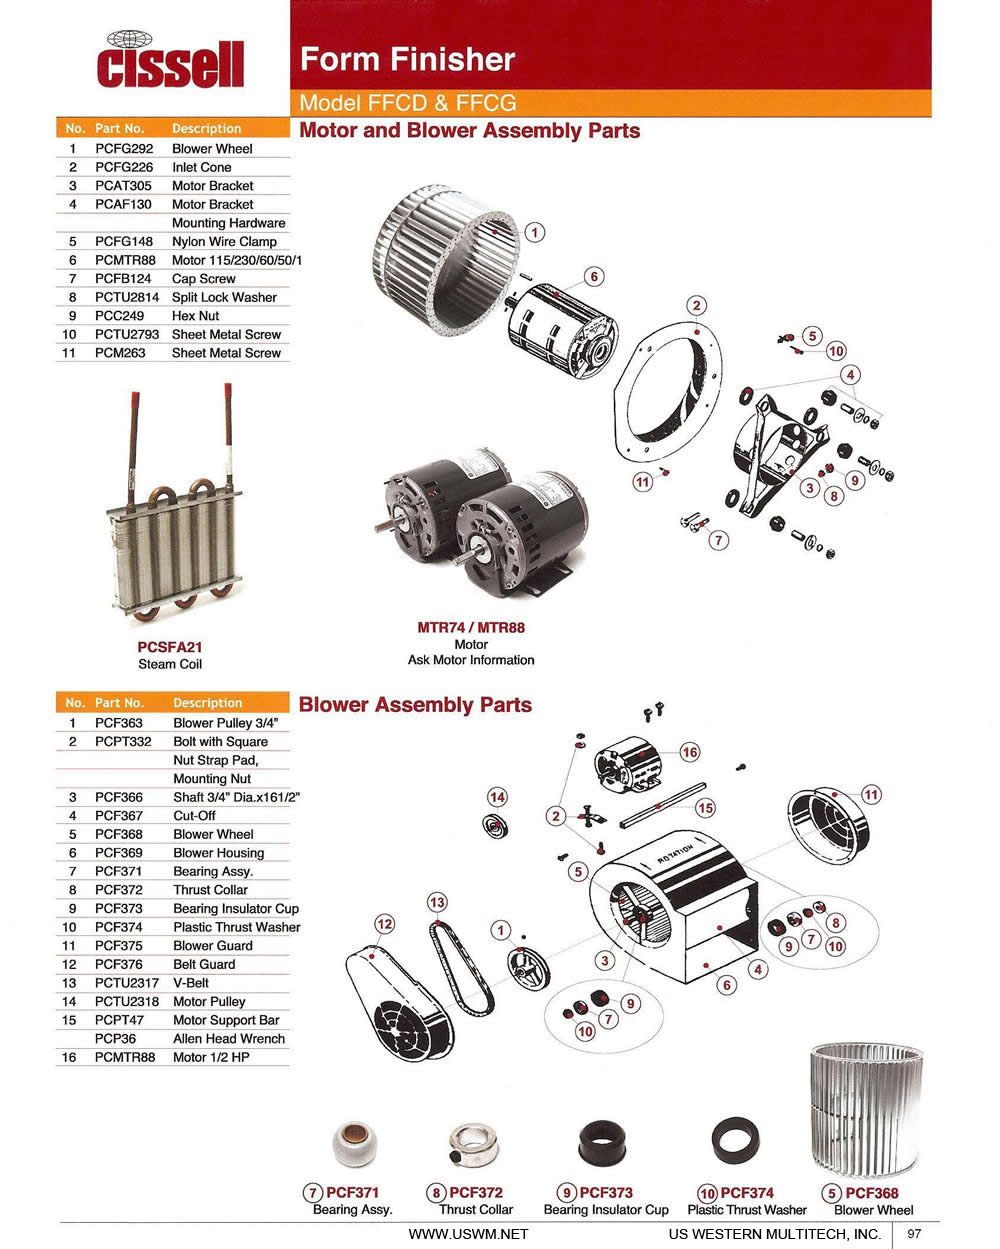 cissell uswm dry clean laundry machines presses parts and cissell form finisher model ffcd ffcg motor and blower assembly parts